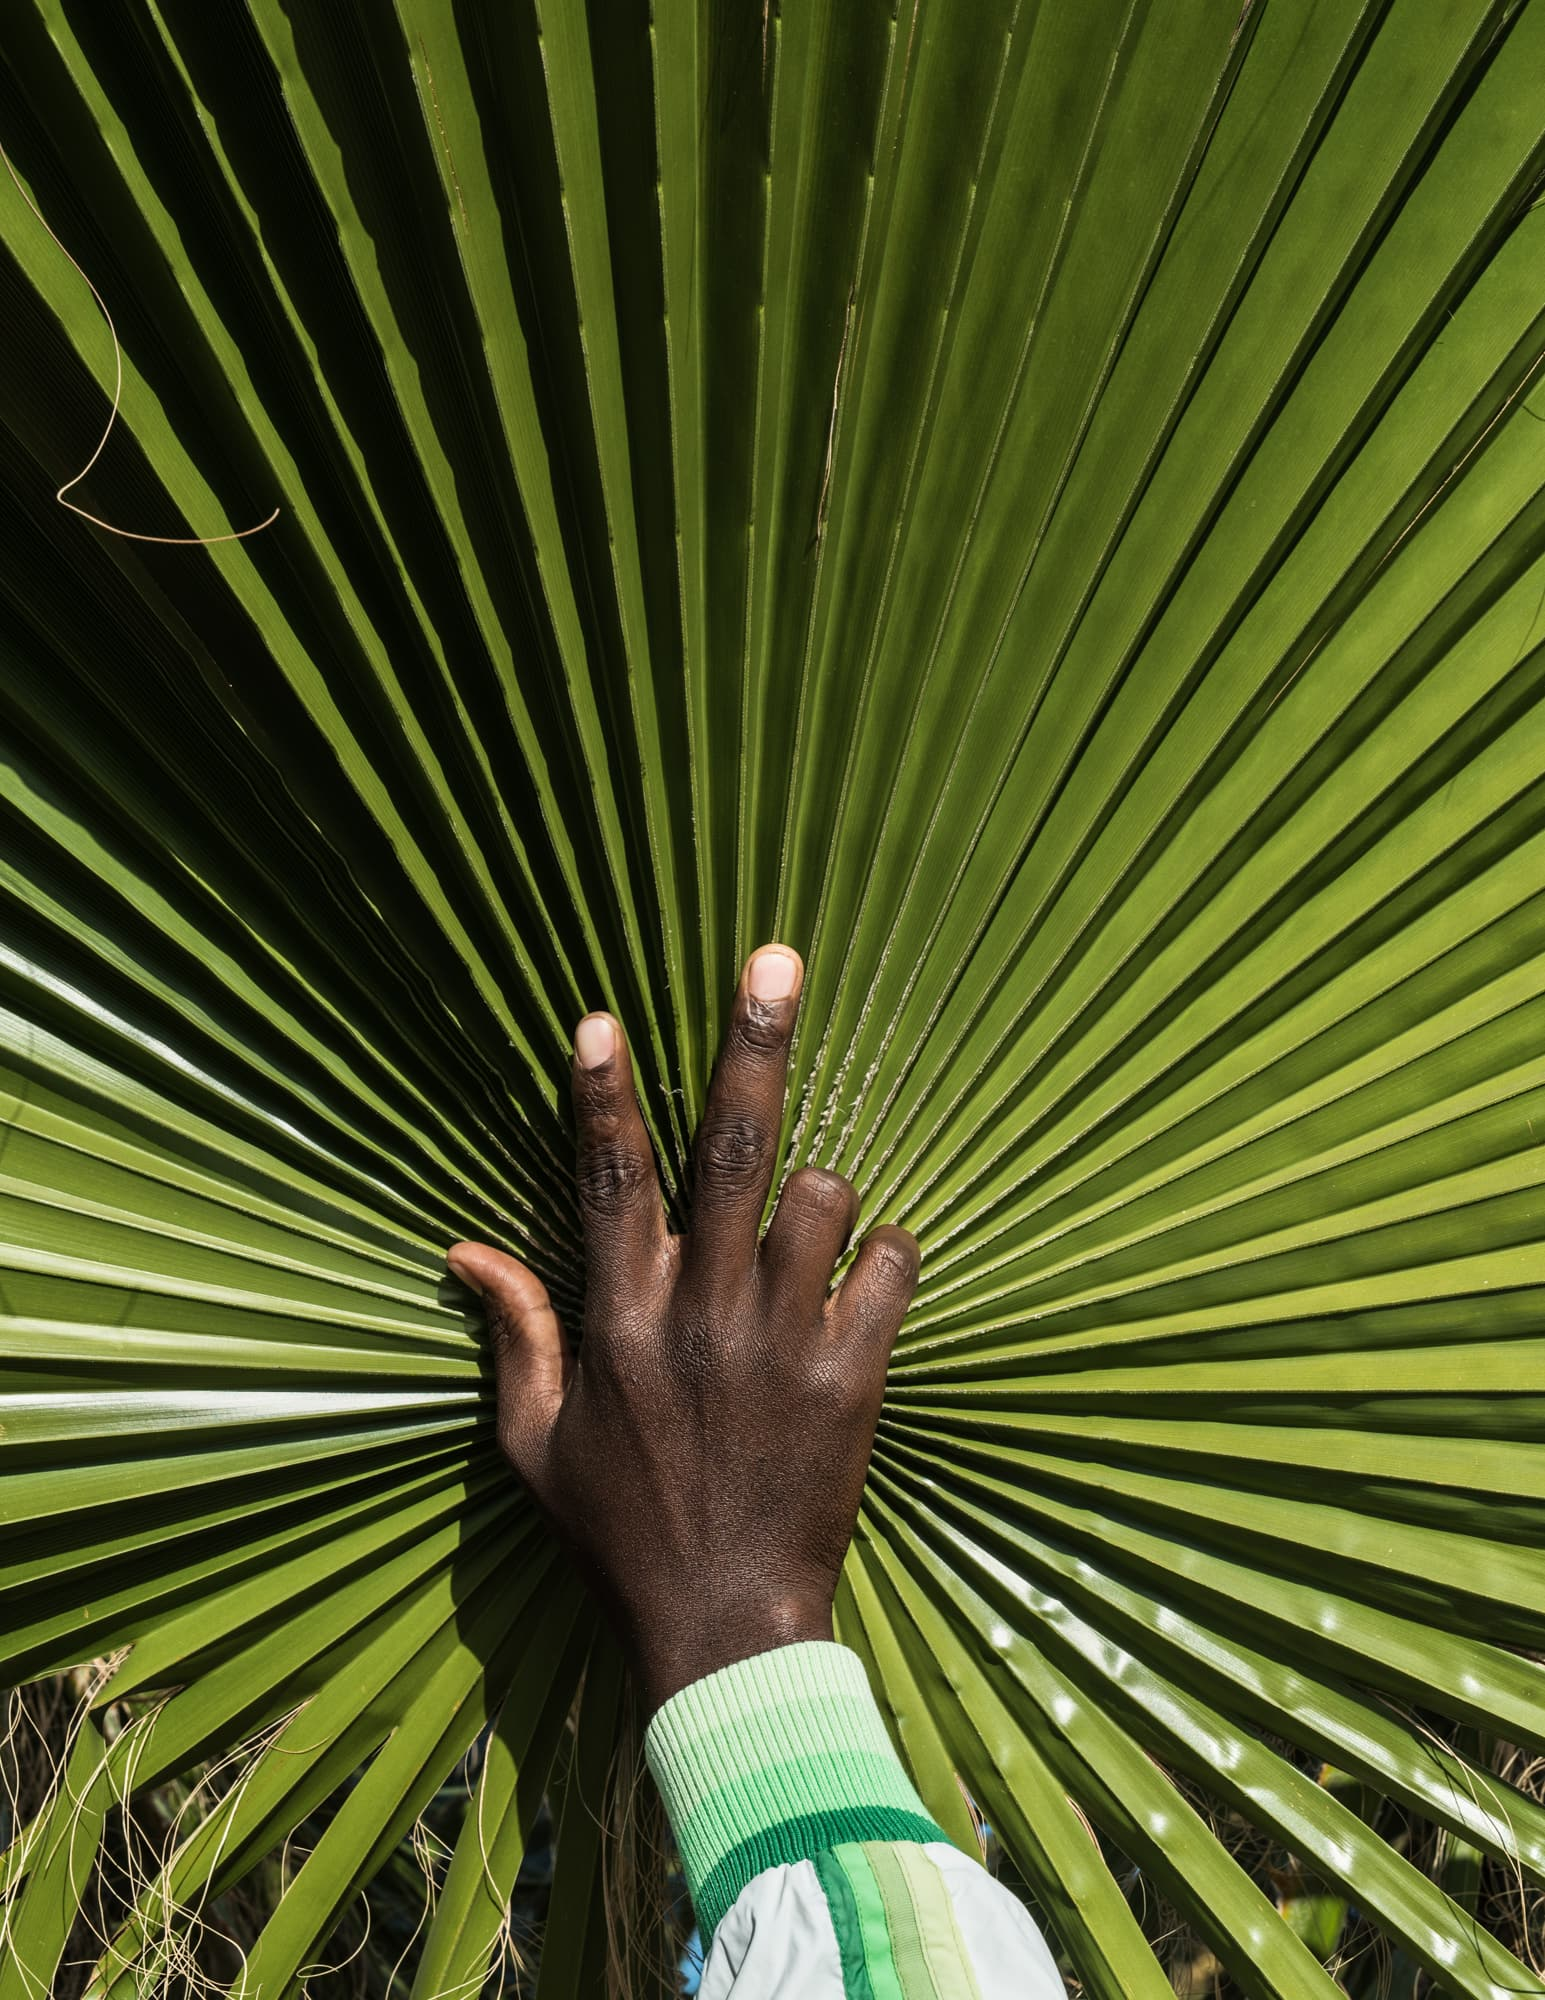 How to get home — Palm leaf and handsign to Extension 8